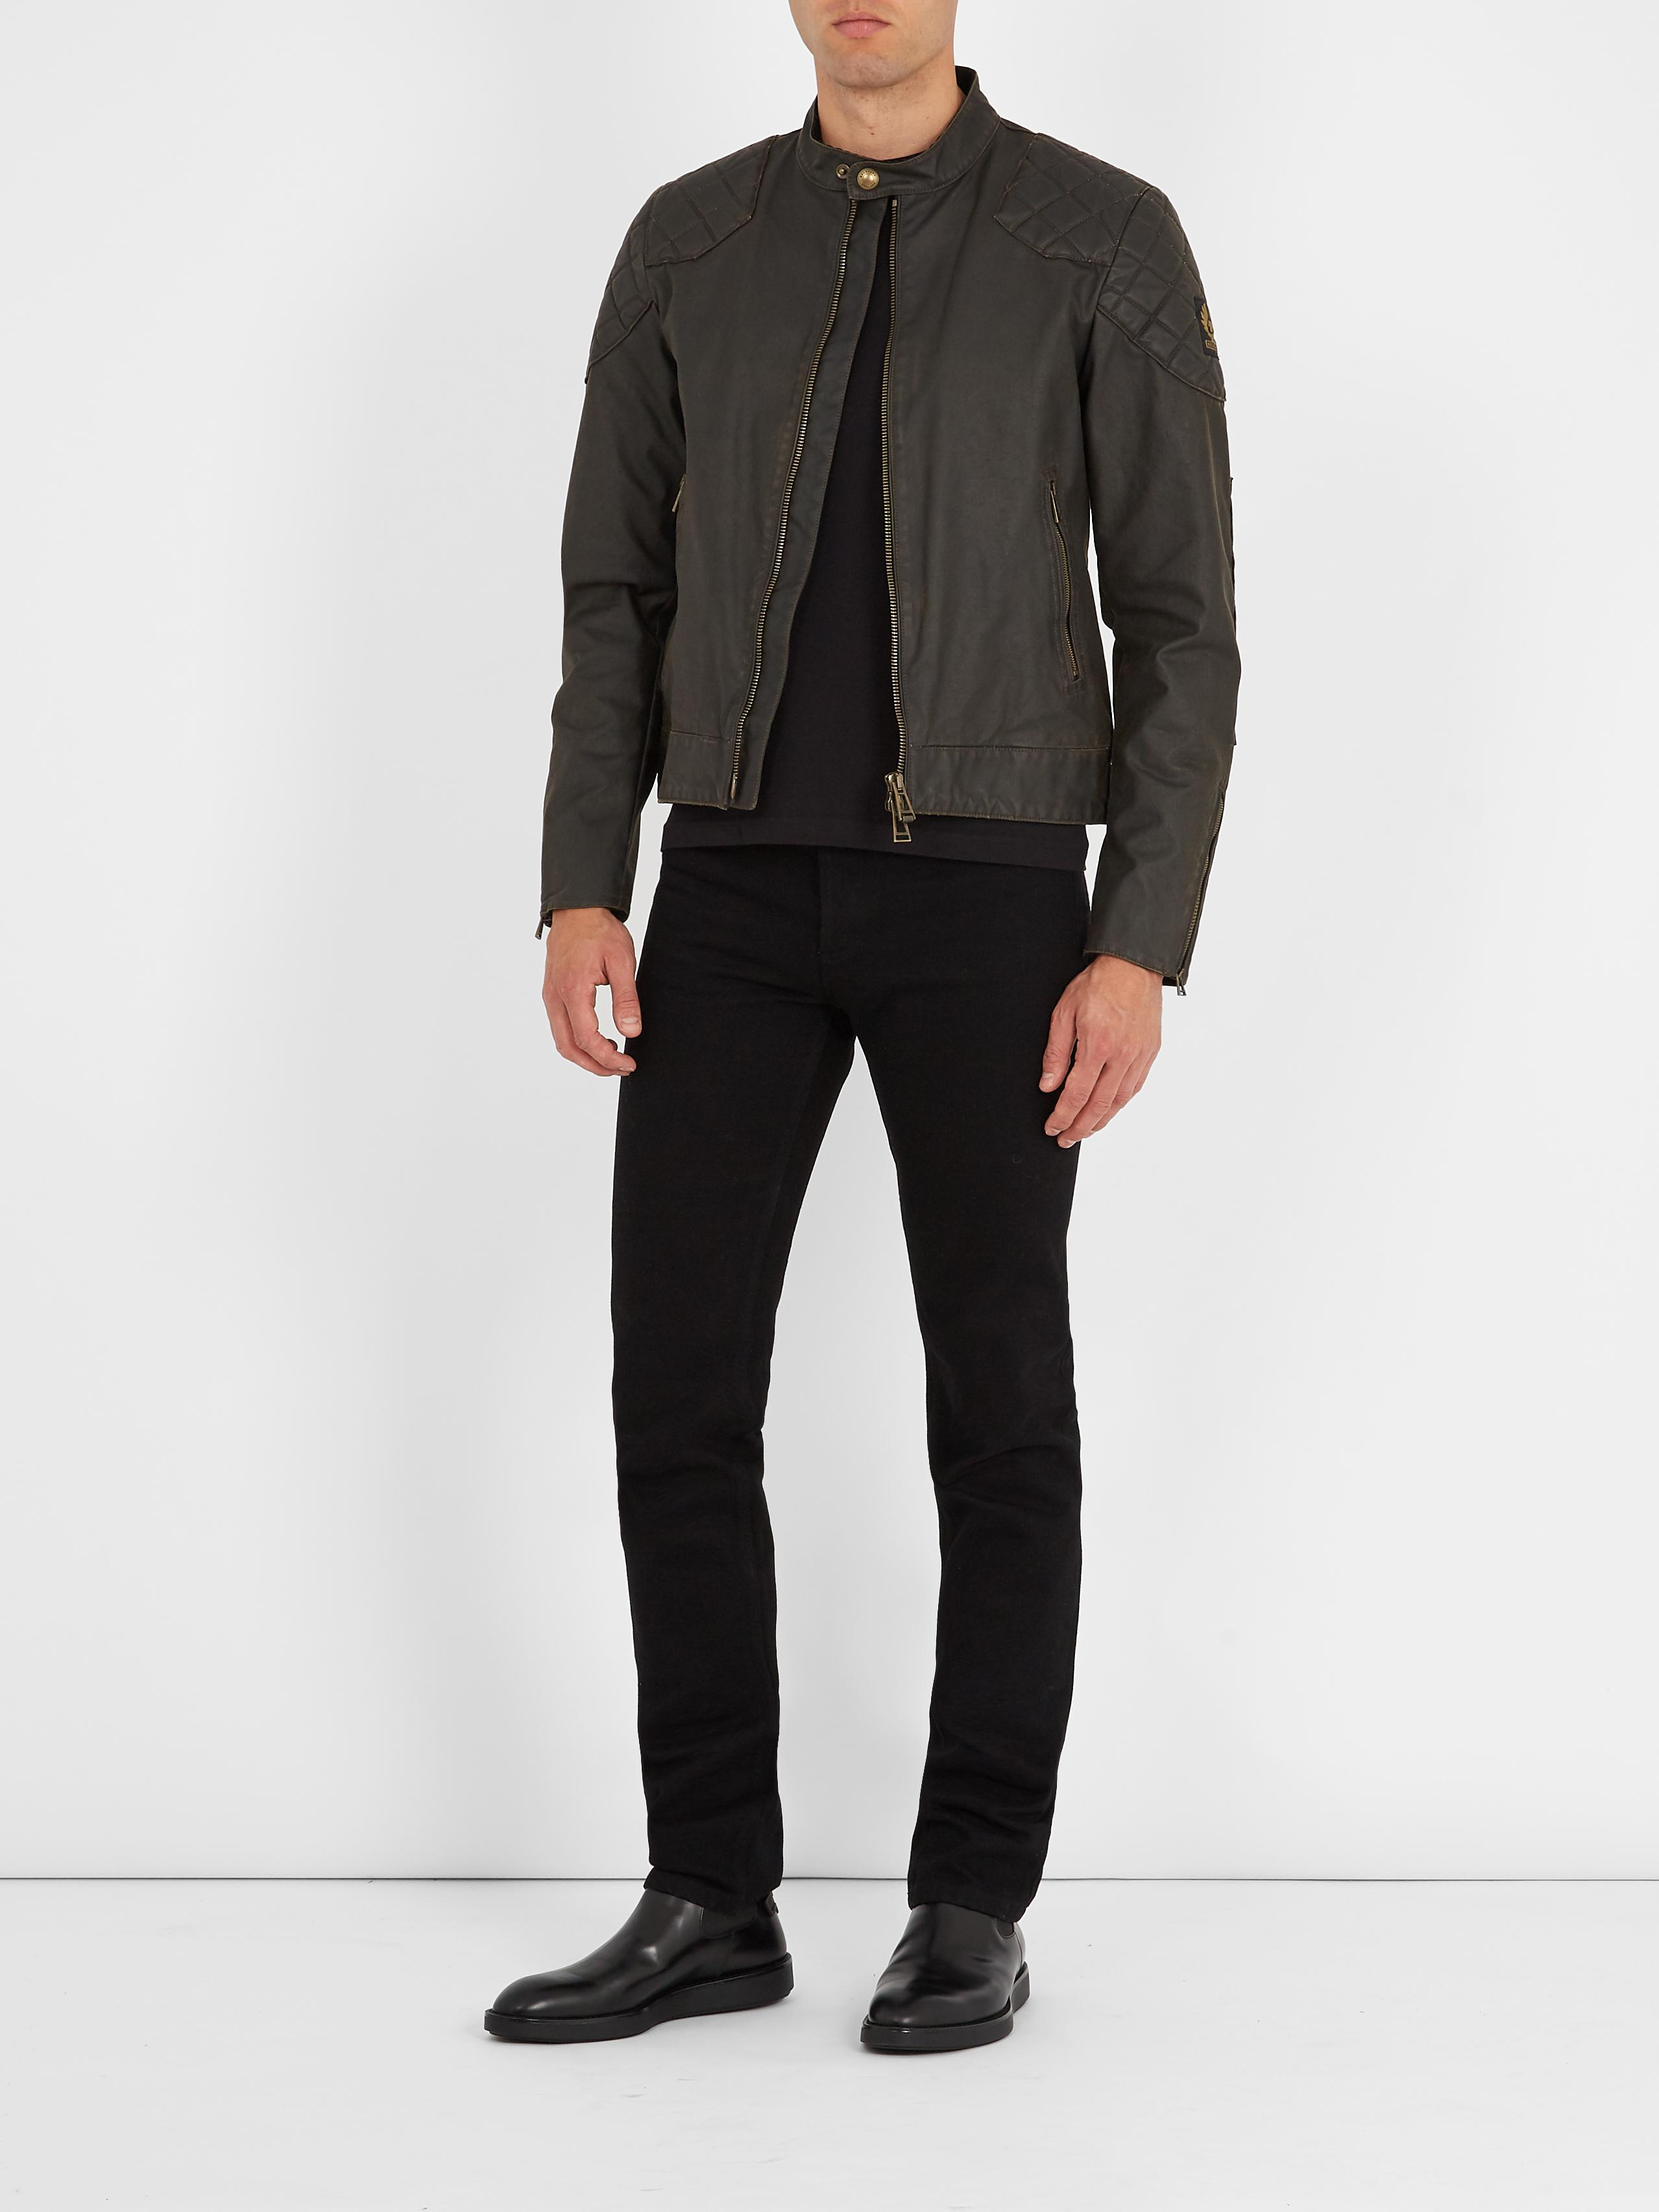 067418f4f8 Belstaff Outlaw Waxed Cotton-blend Jacket in Black for Men - Lyst